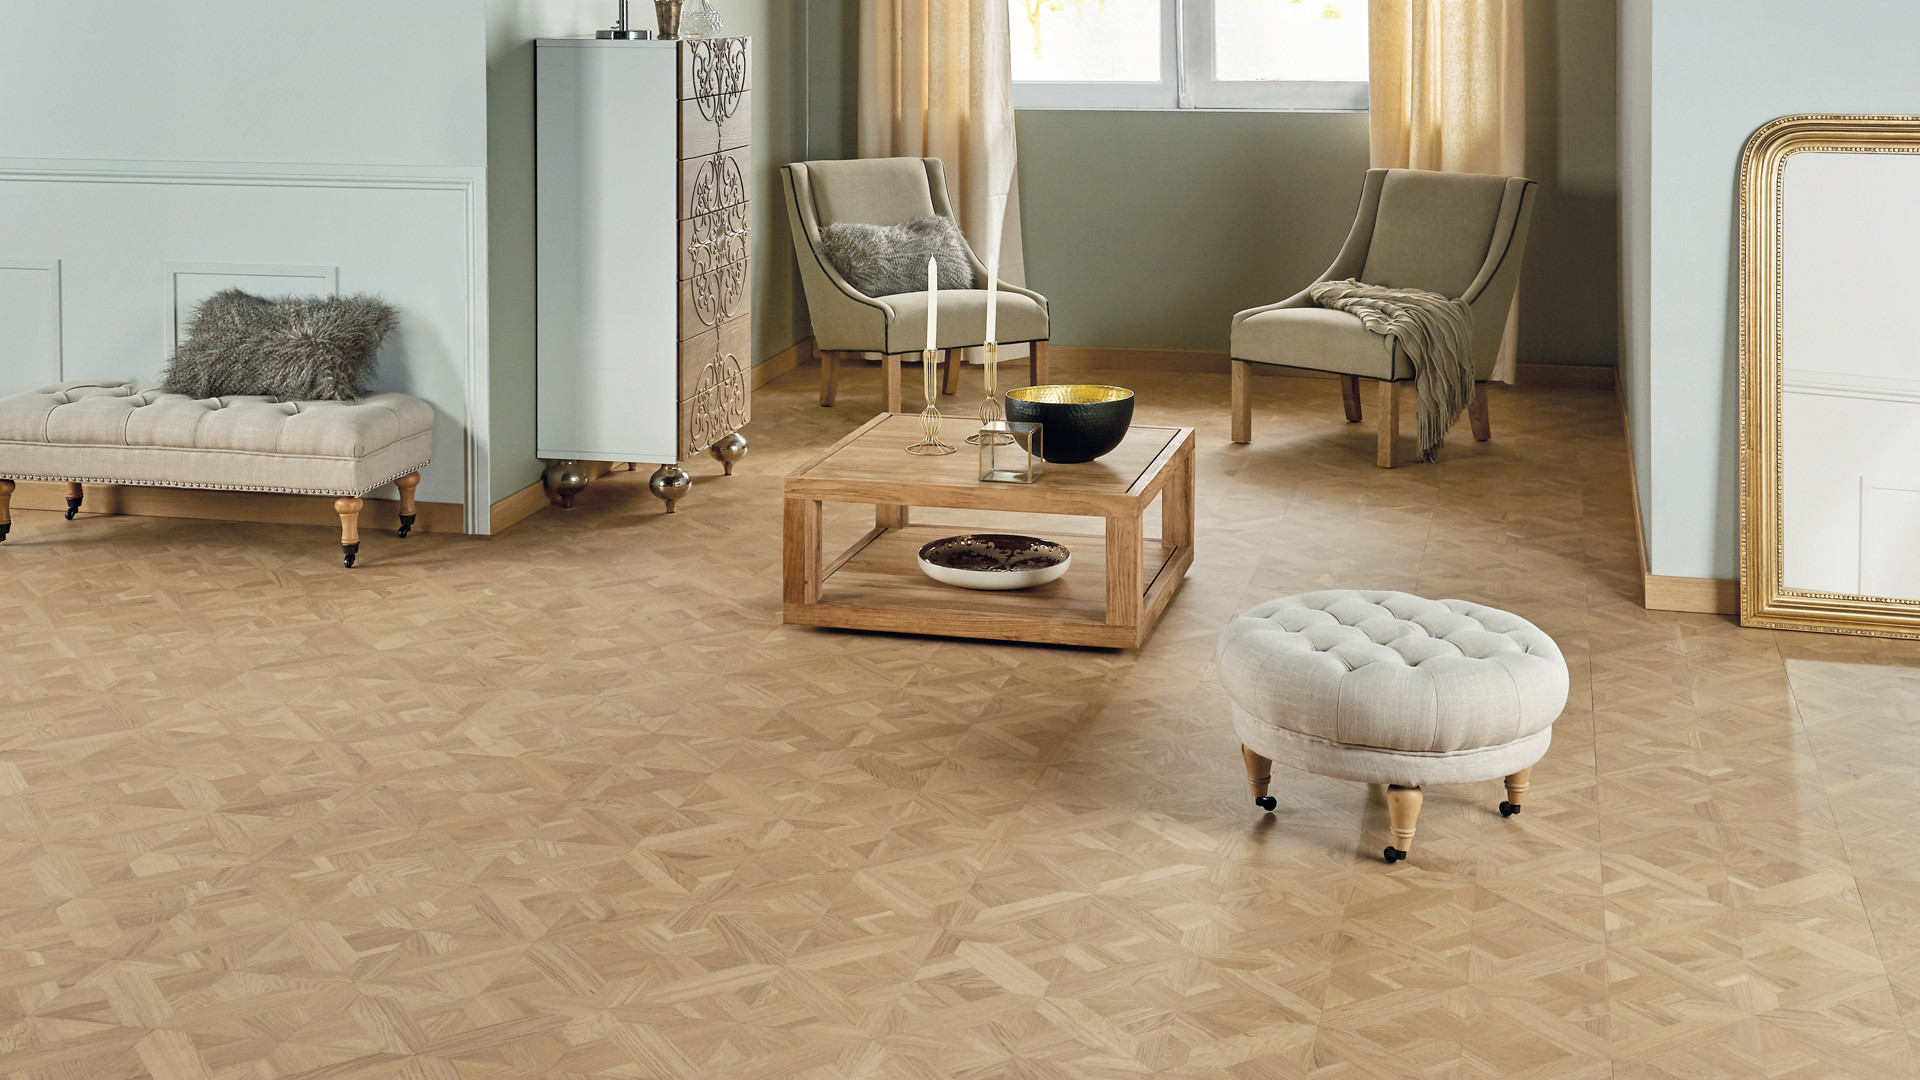 Parquet en French oak Classic n°2 Bois flotté 14 mm